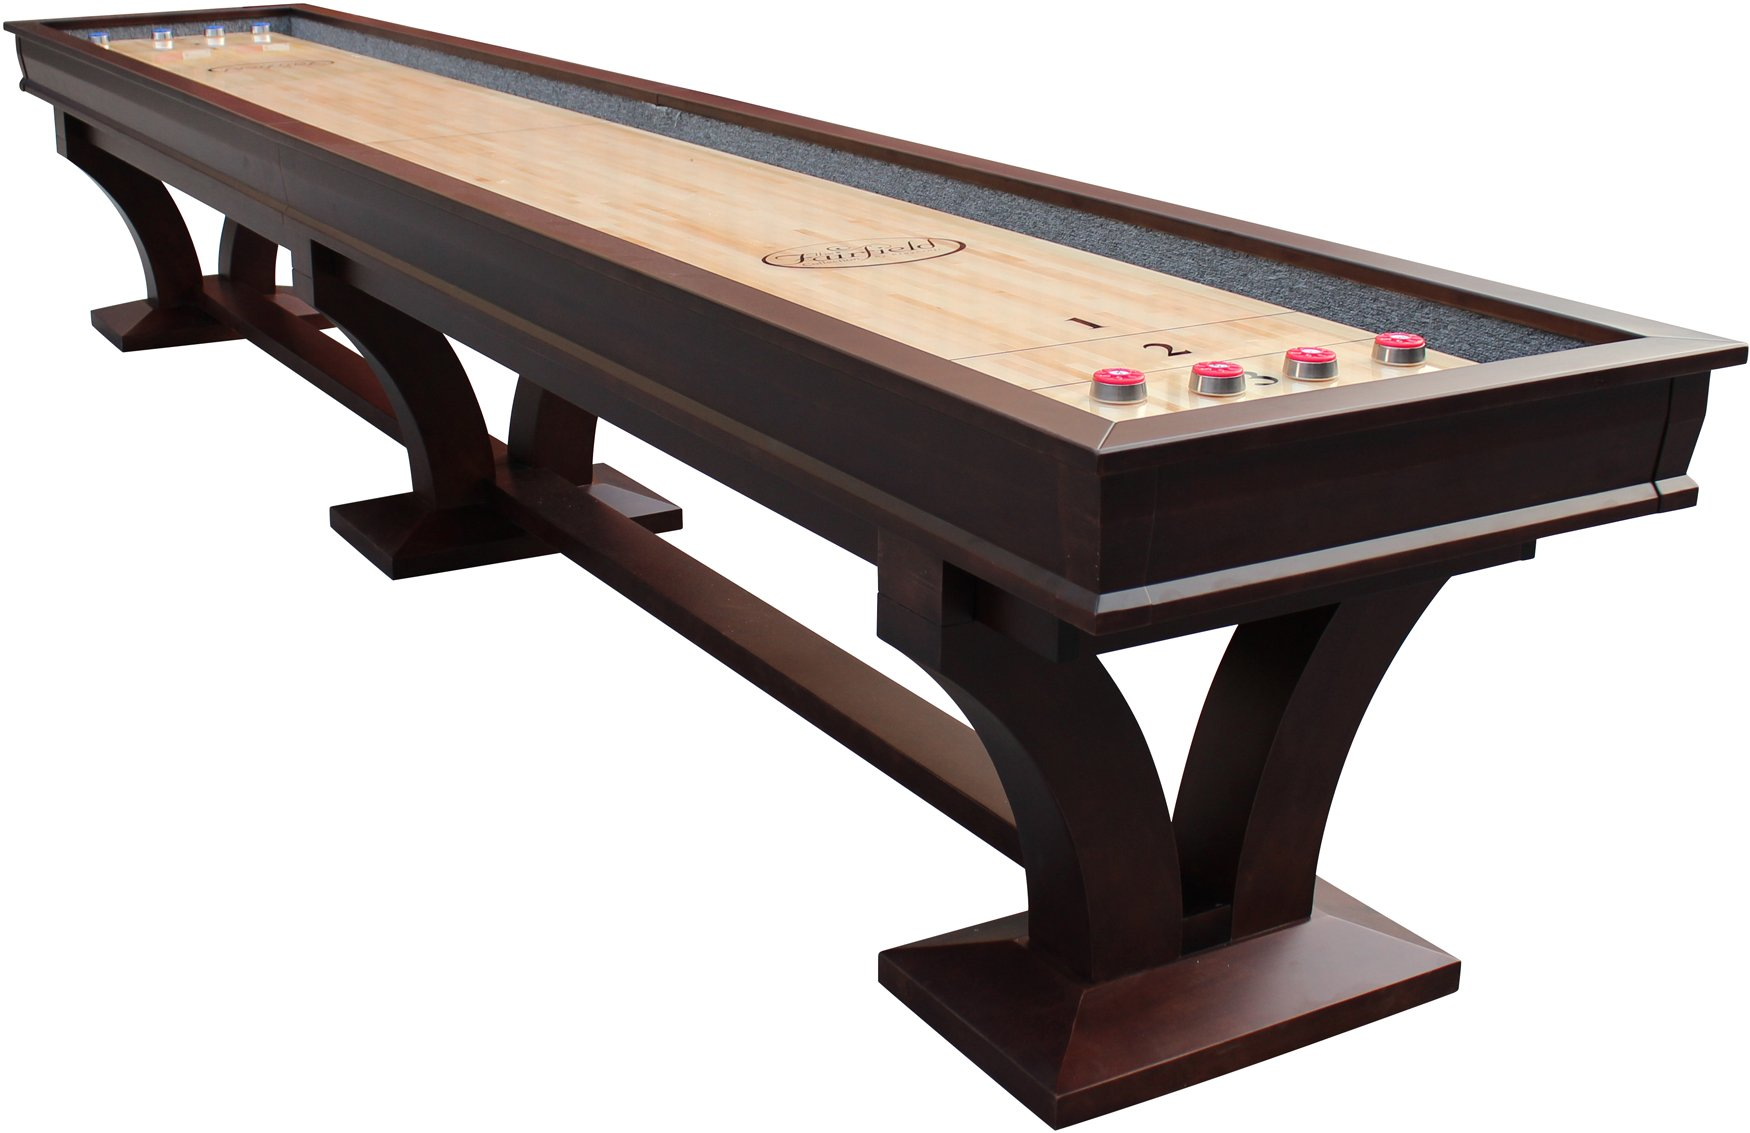 Playcraft Columbia River 16' Pro-Style Shuffleboard Table, Espresso by Playcraft